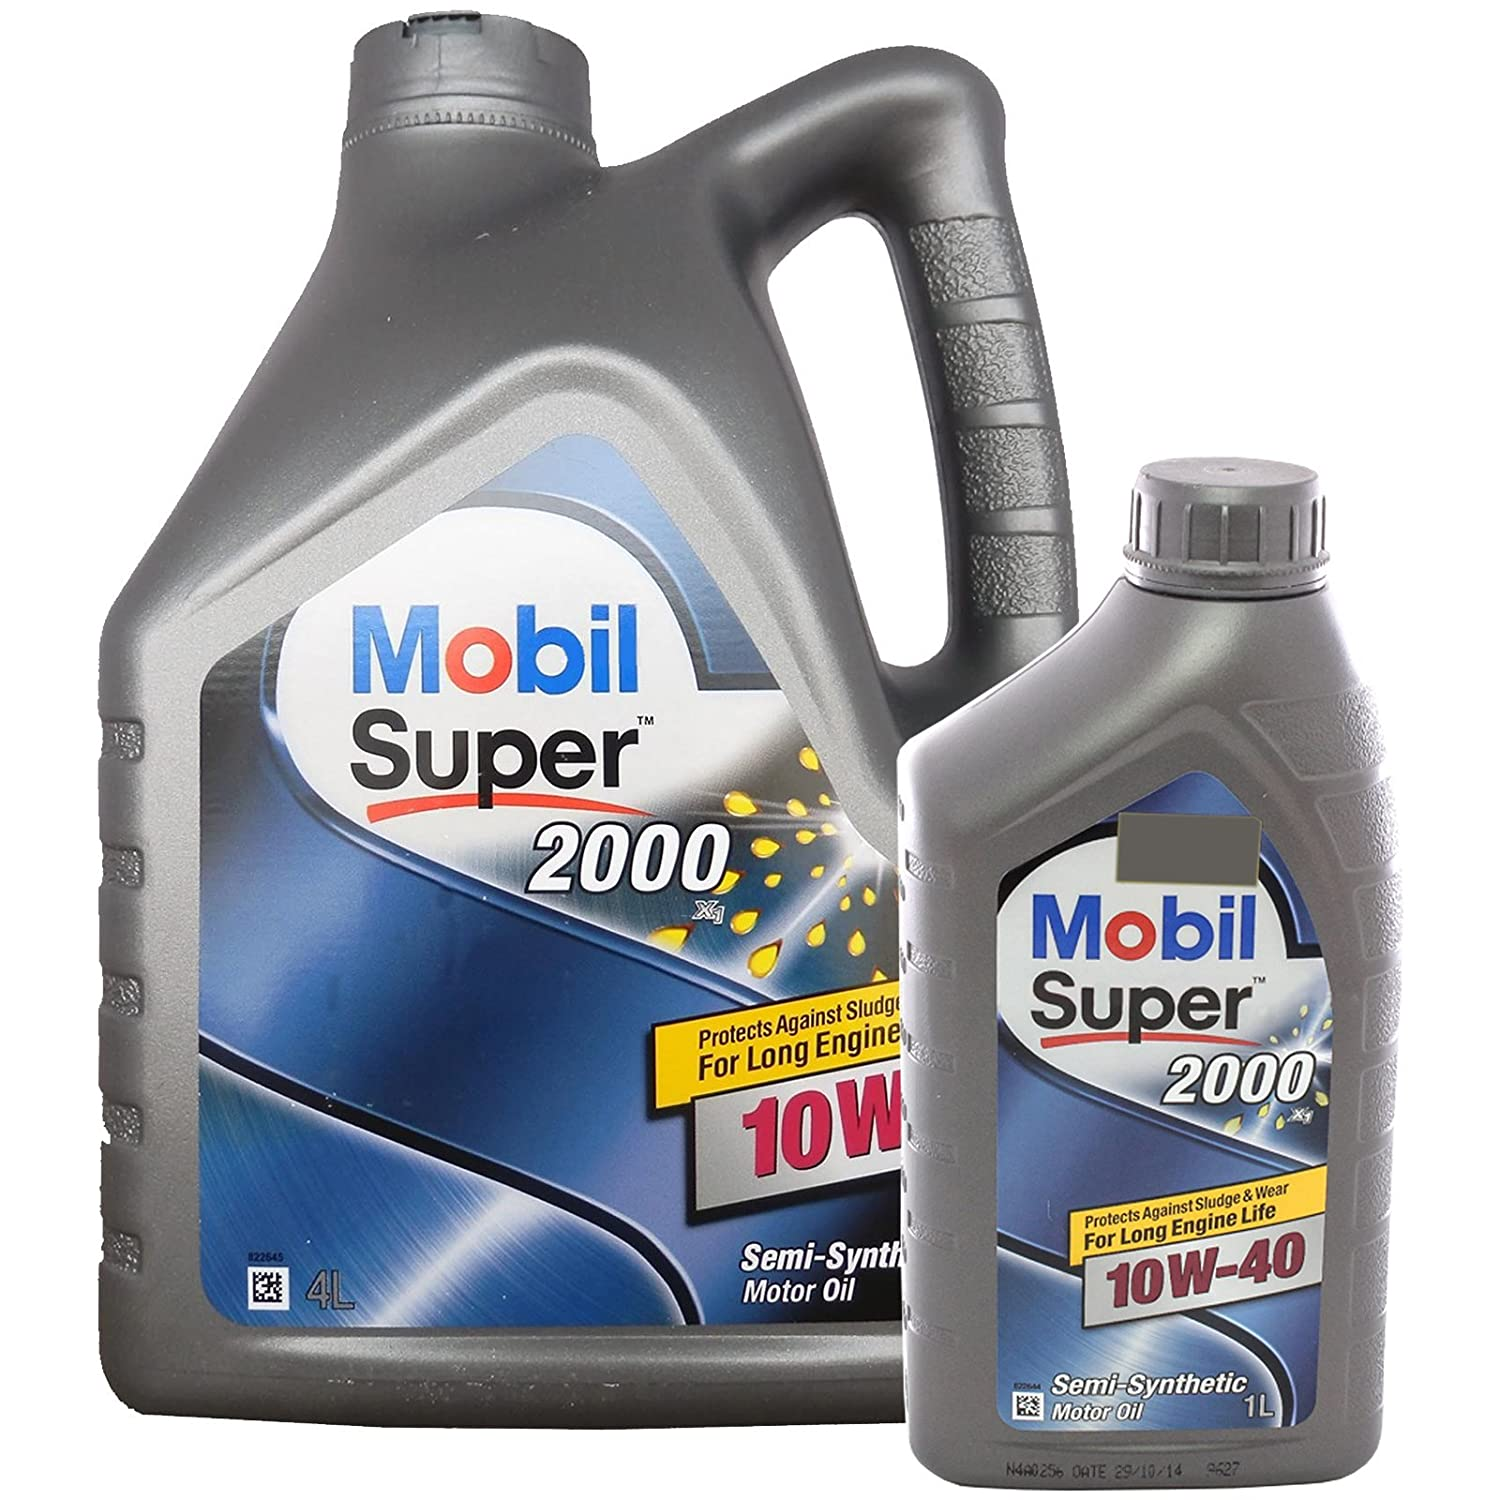 Aceite de Motor Super 2000 Mobil1 10-40-Semillas Synthetic 10W40 5 Litros: Amazon.es: Coche y moto